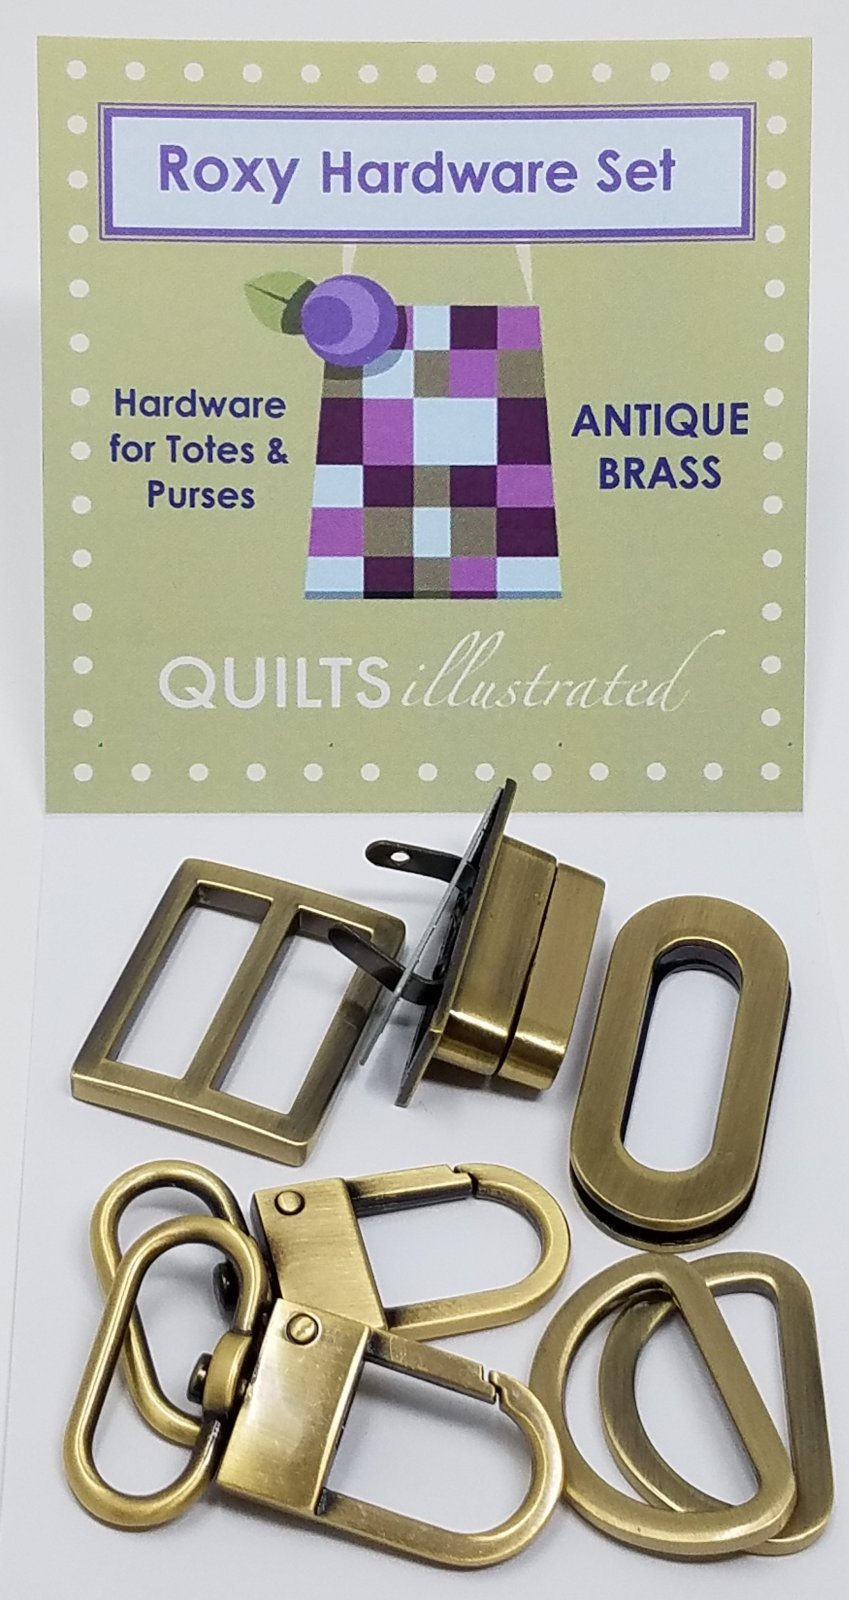 Roxy Hardware Set--Antique Brass (psh038)